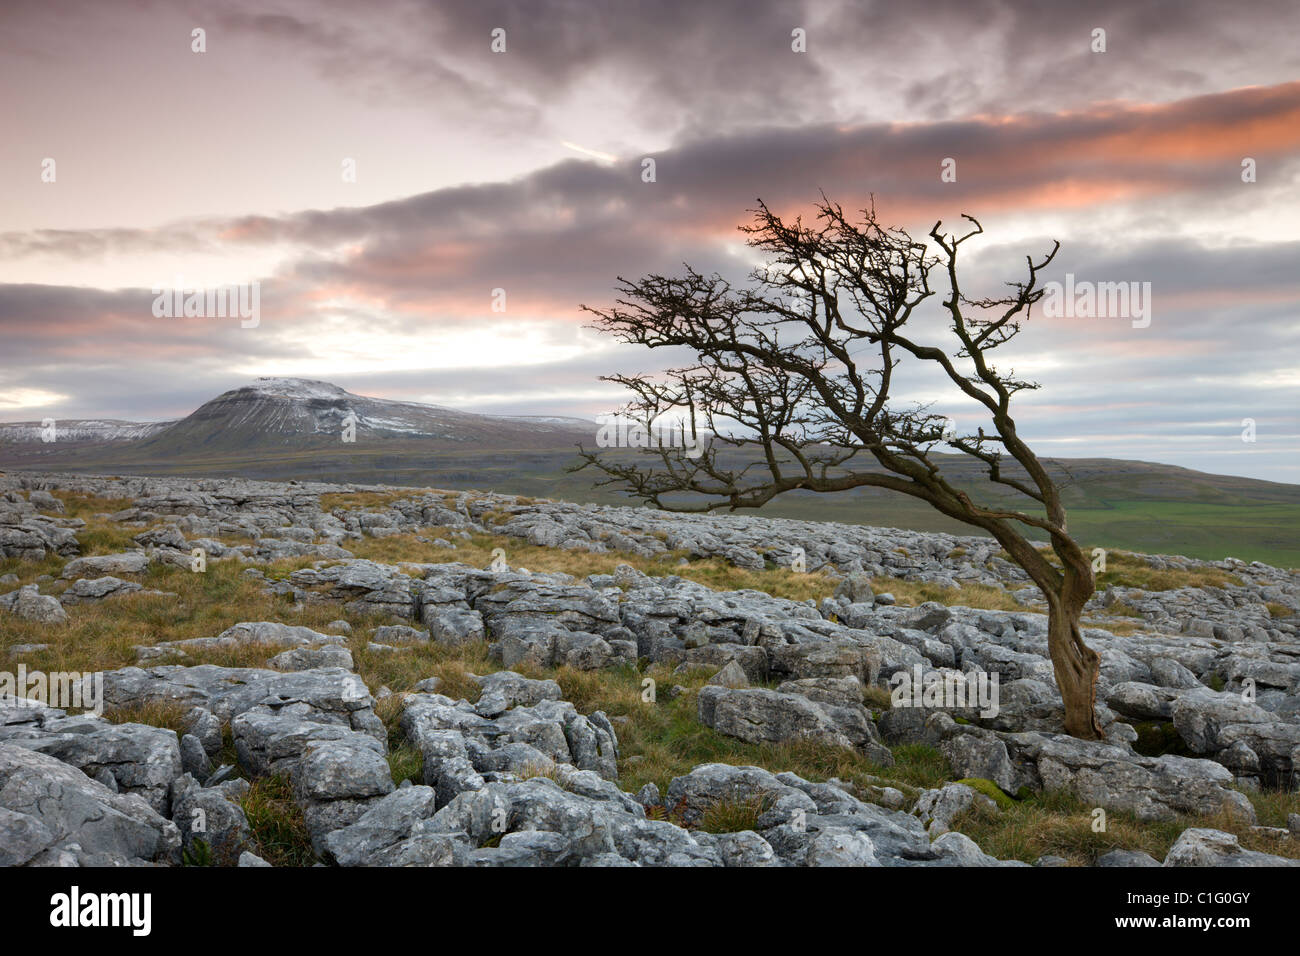 Snow capped Ingleborough and wind blown hawthorn tree on limestone pavements on Twistleton Scar, Yorkshire Dales - Stock Image